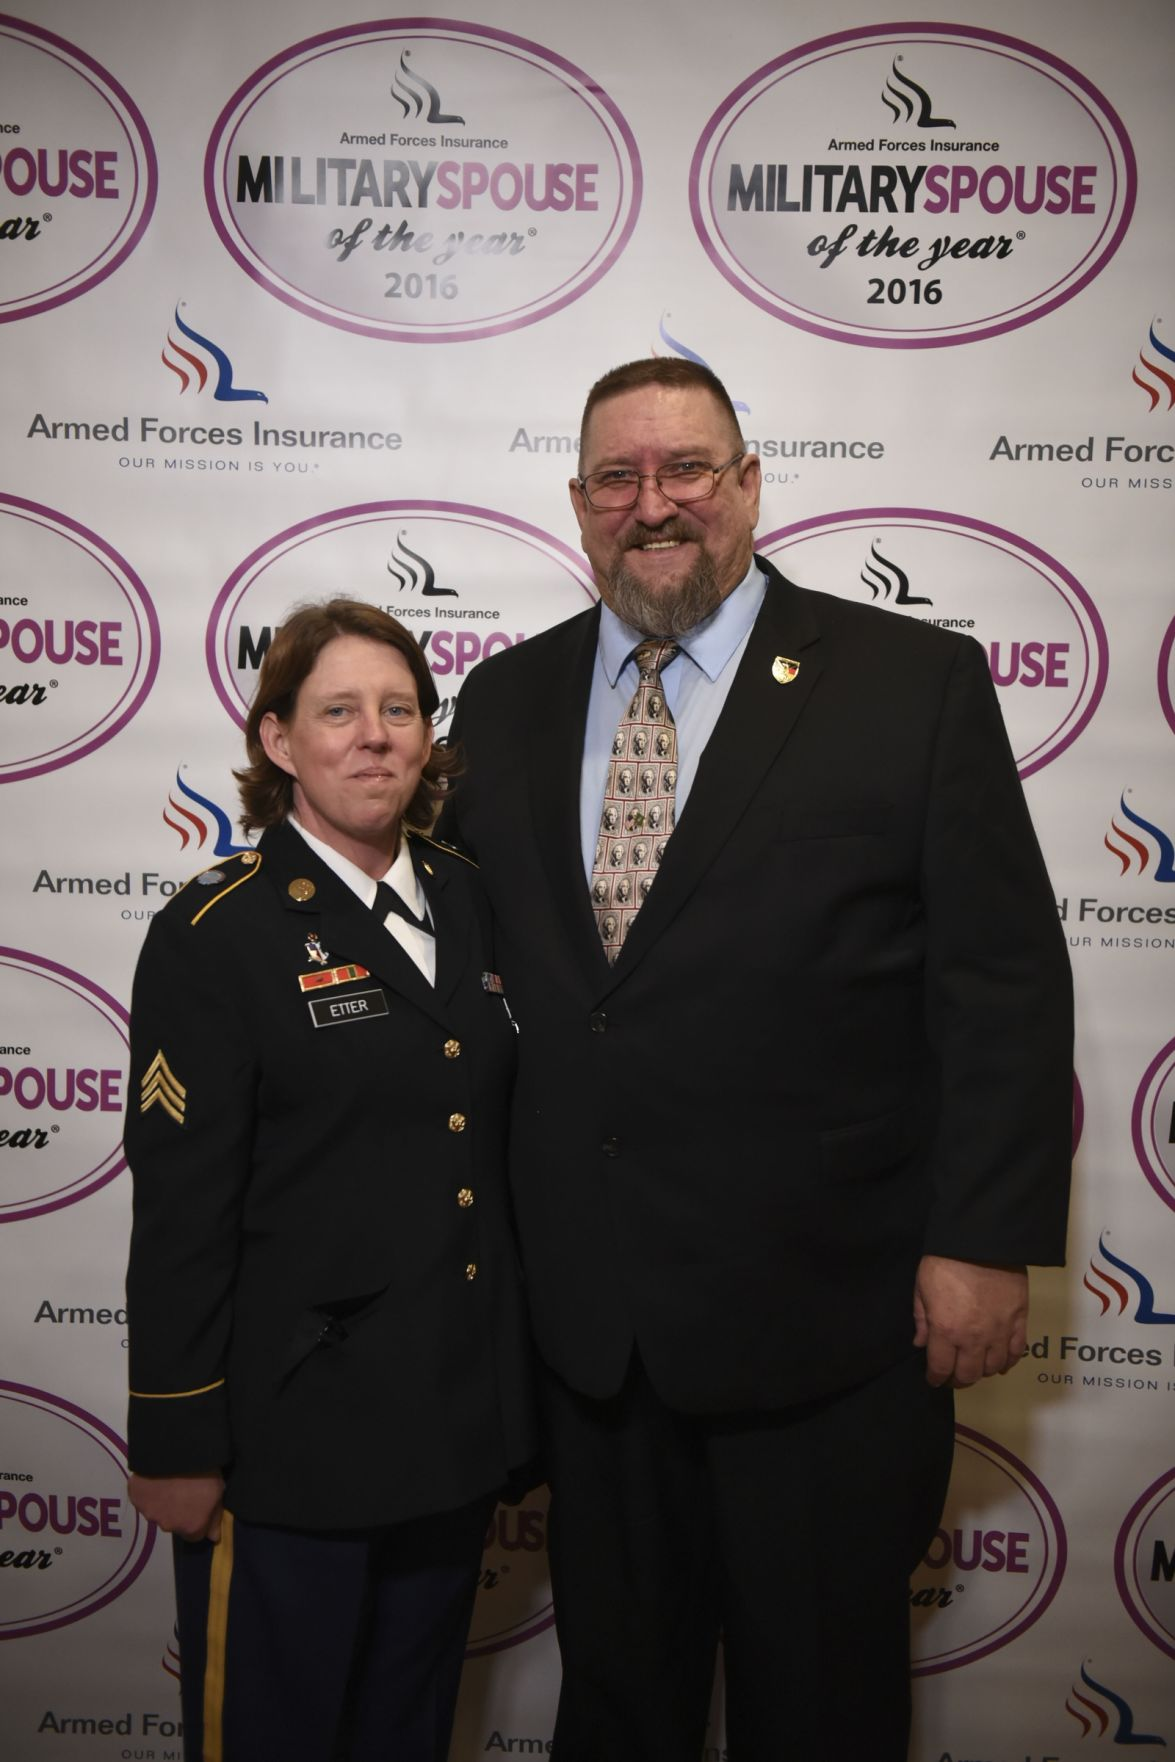 The 2016 Armed Forces Insurance Military Spouse of the Year Award